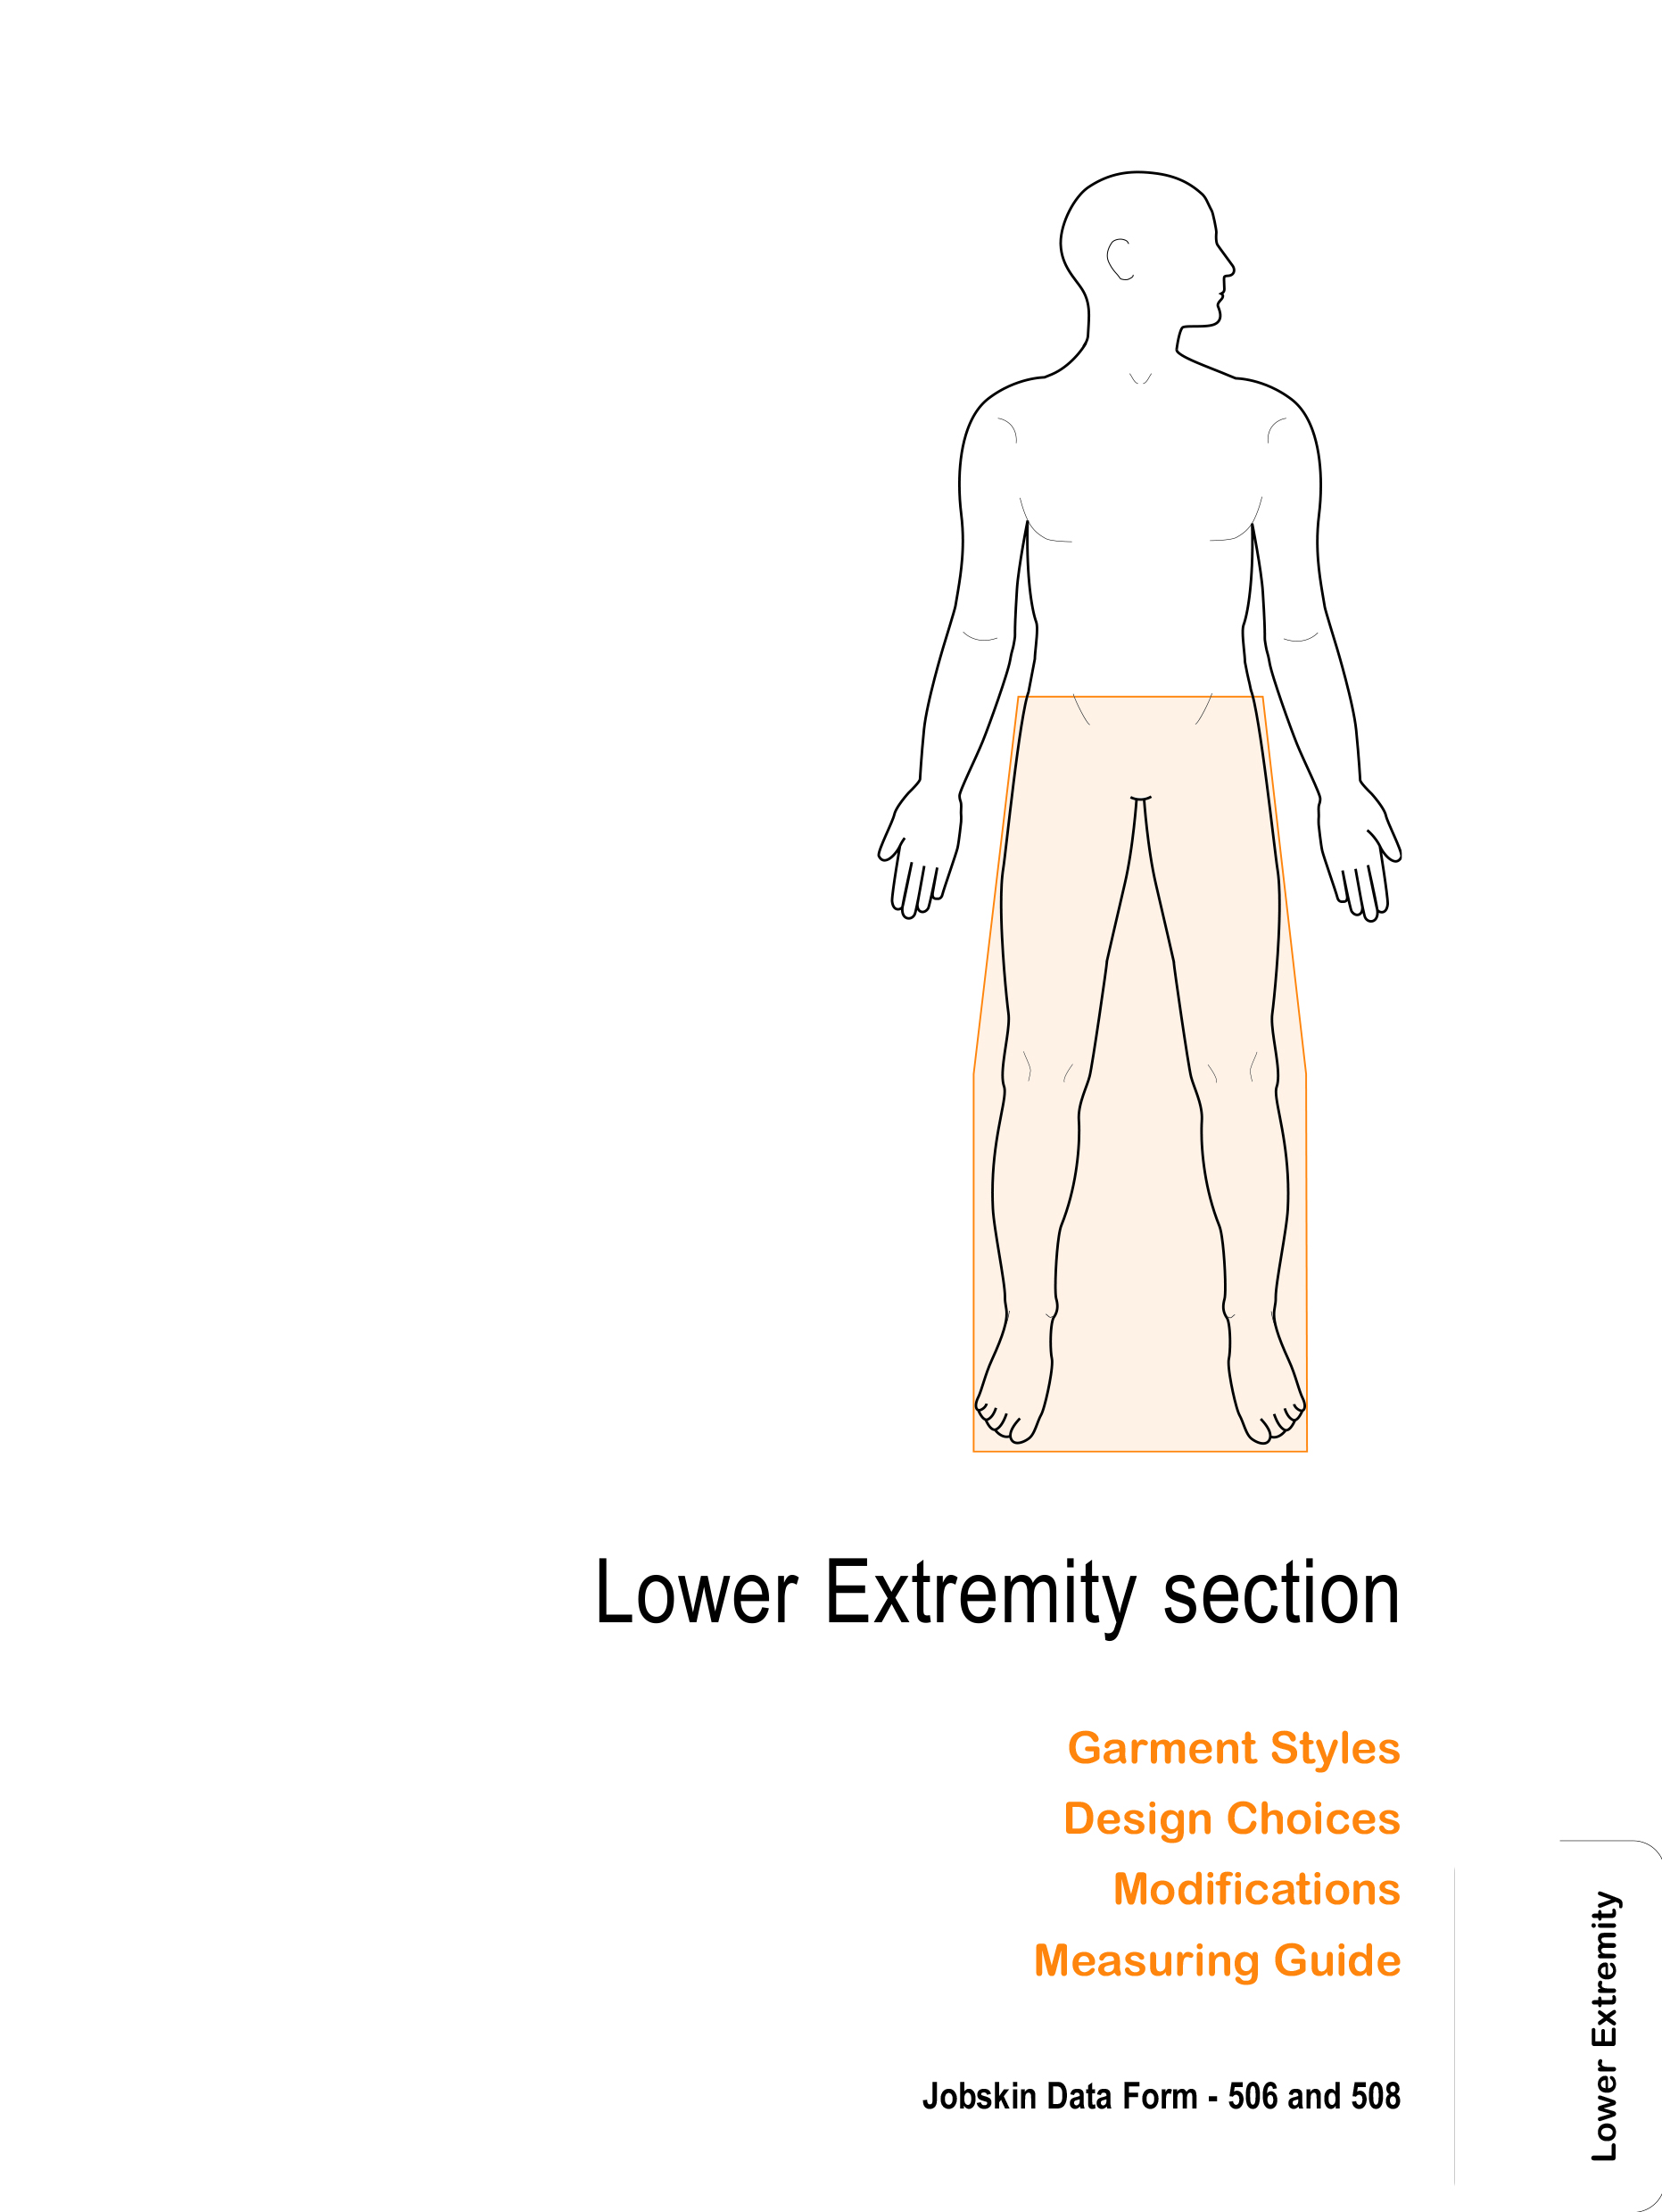 Lower extremity how to measure section